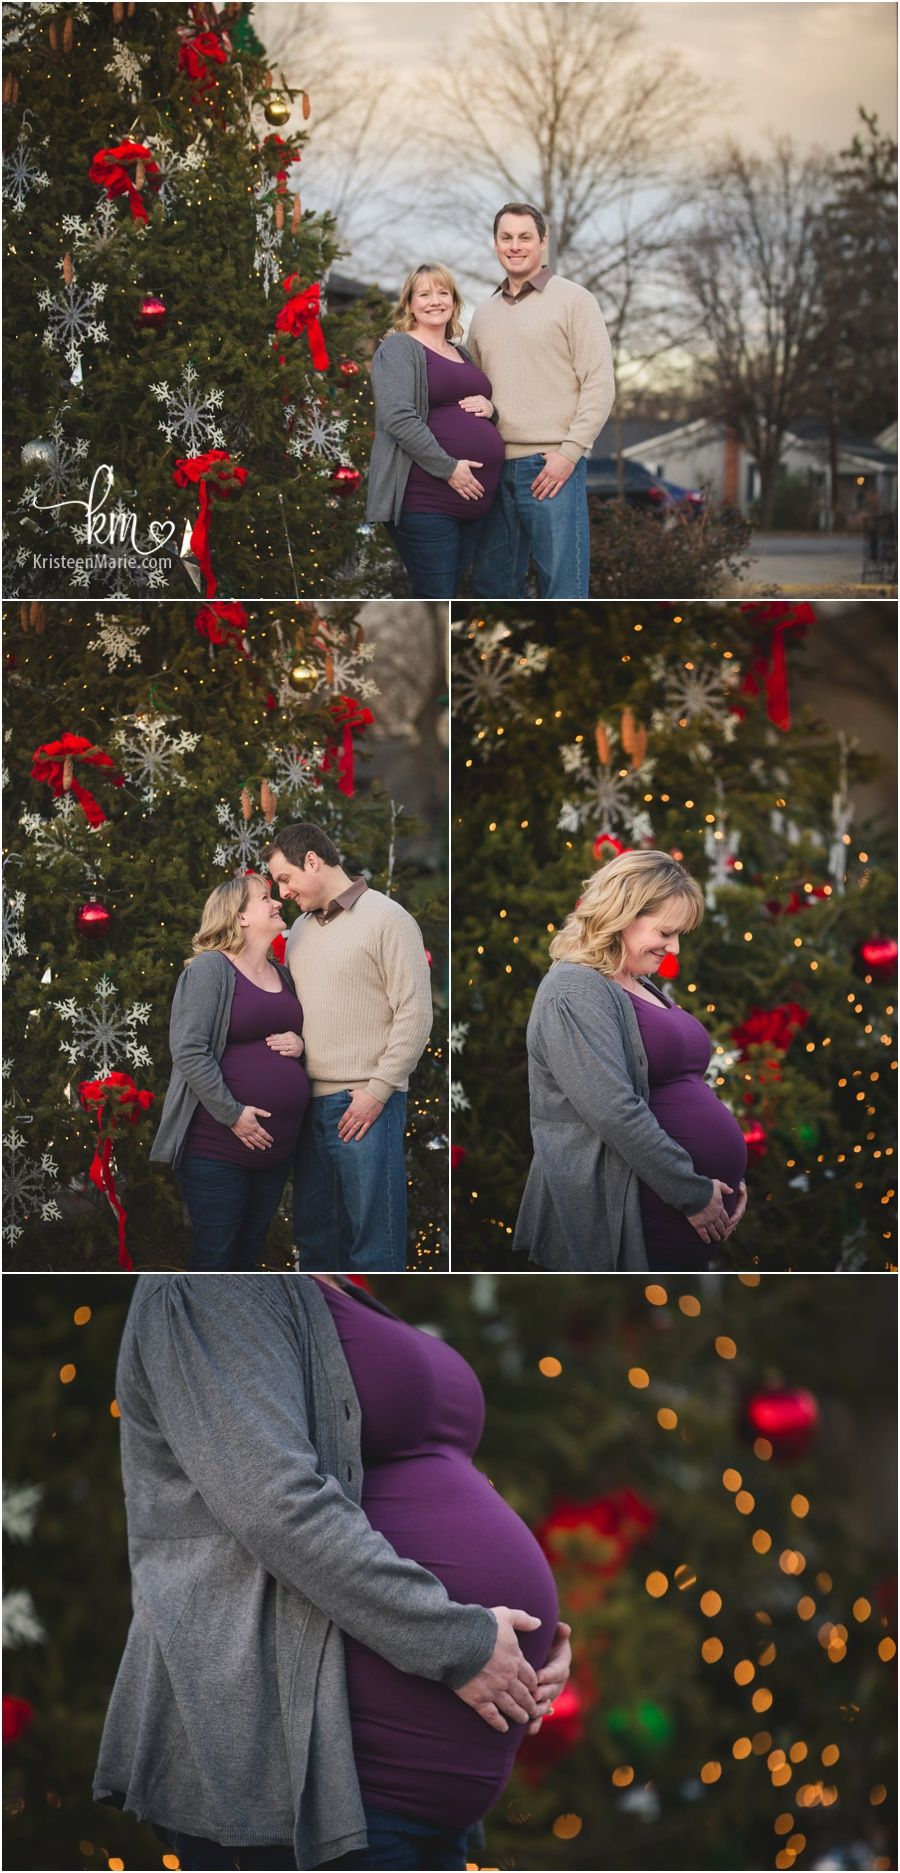 Maternity Session In Downtown Zionsville Indiana Maternity Christmas Pictures Maternity Session Maternity